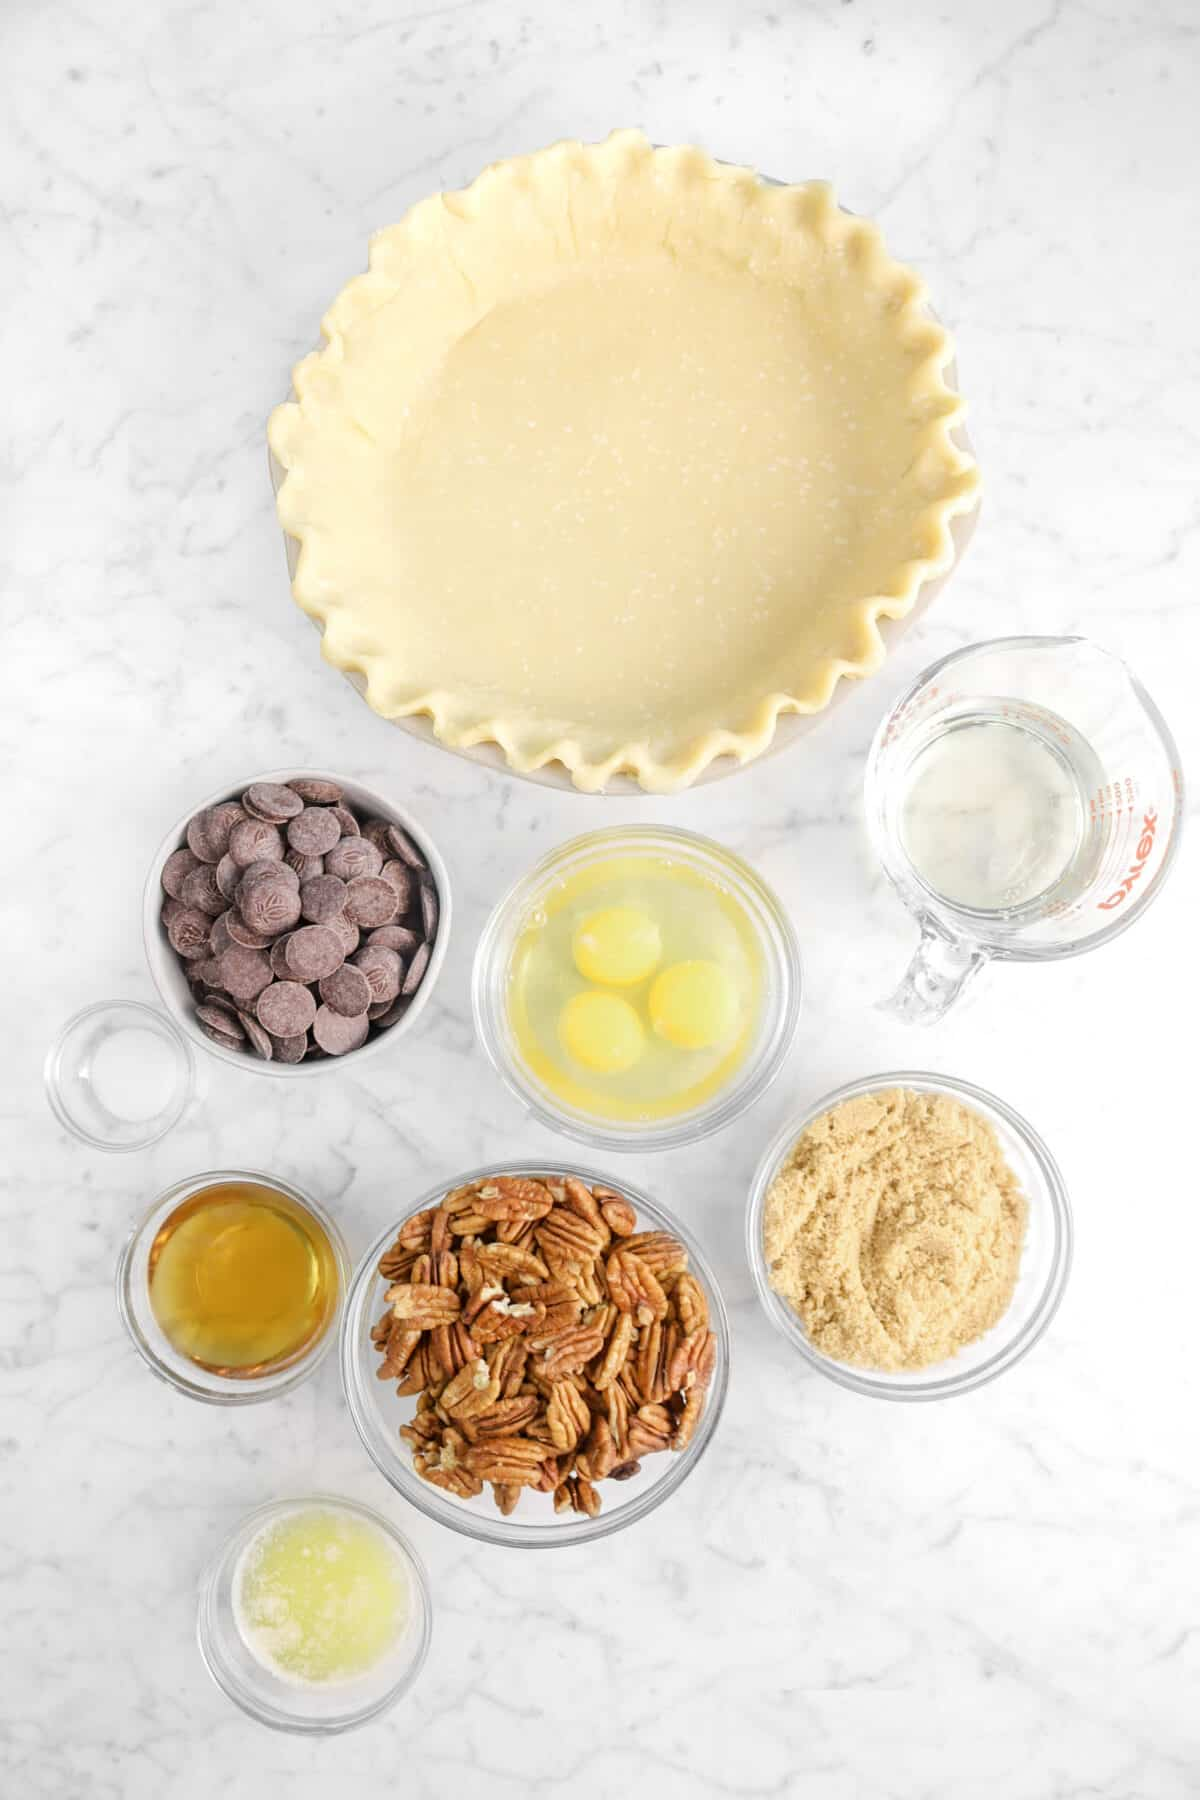 pie crust, corn syrup, chocolate, eggs, brown sugar, pecans, salt, bourbon, and melted butter on marble counter